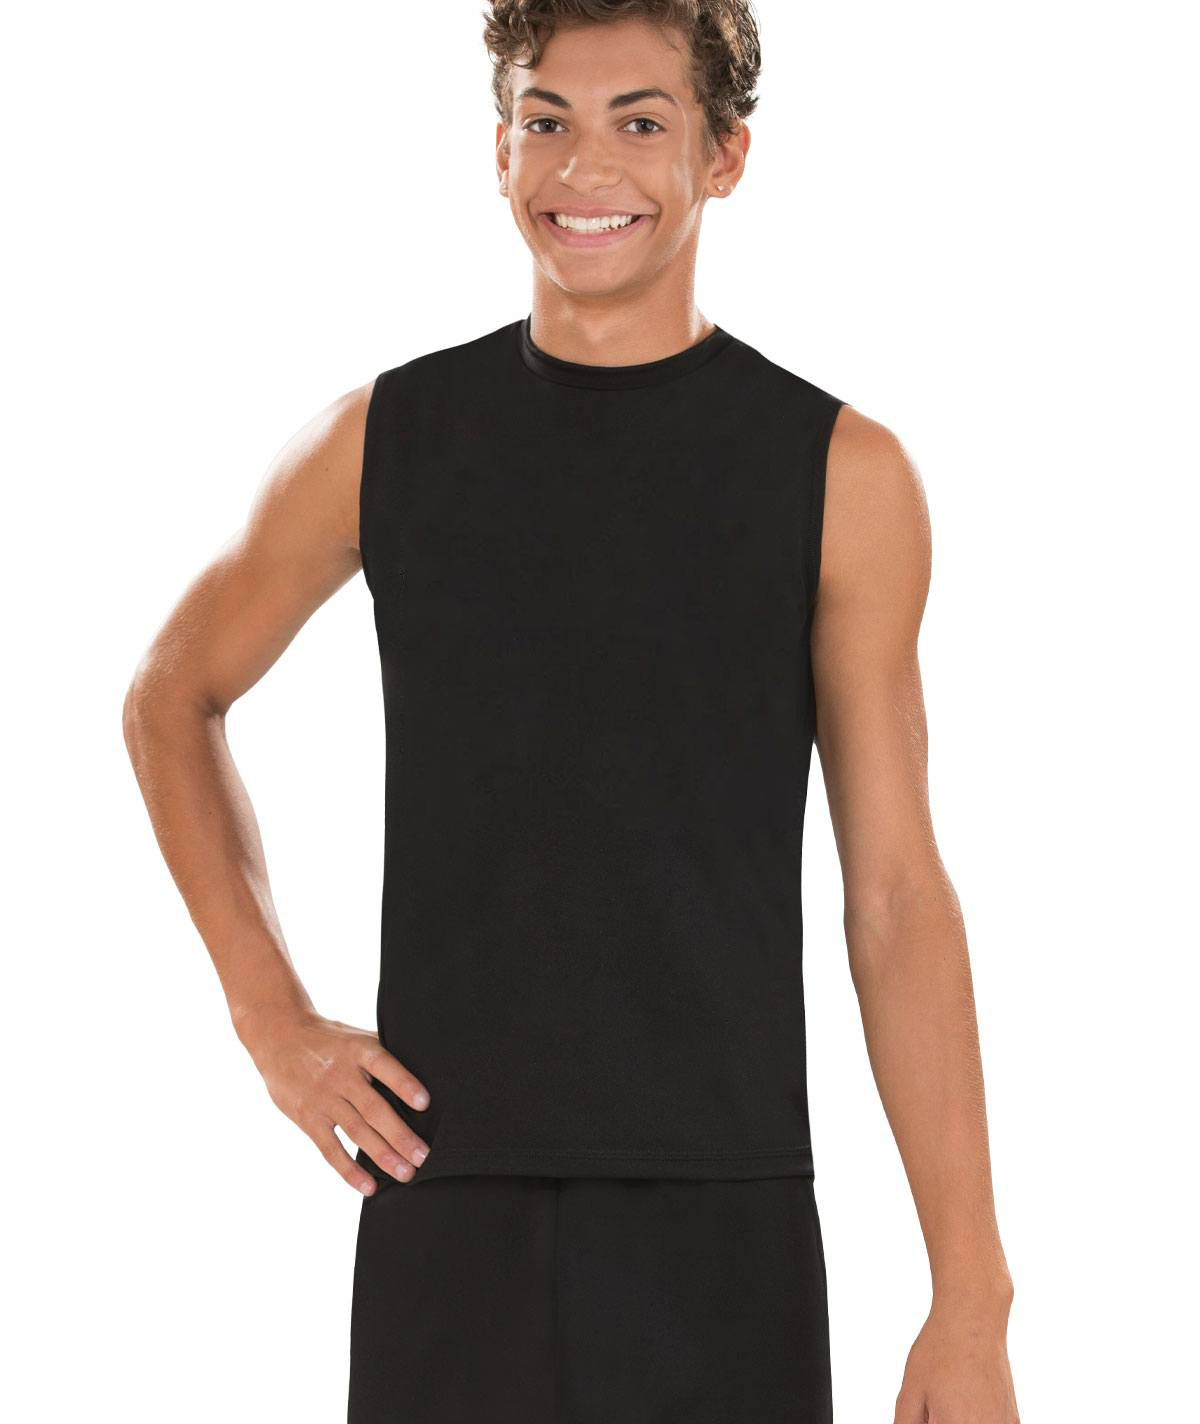 GK All Star Mens Relaxed Fit Sleeveless Cheer Top